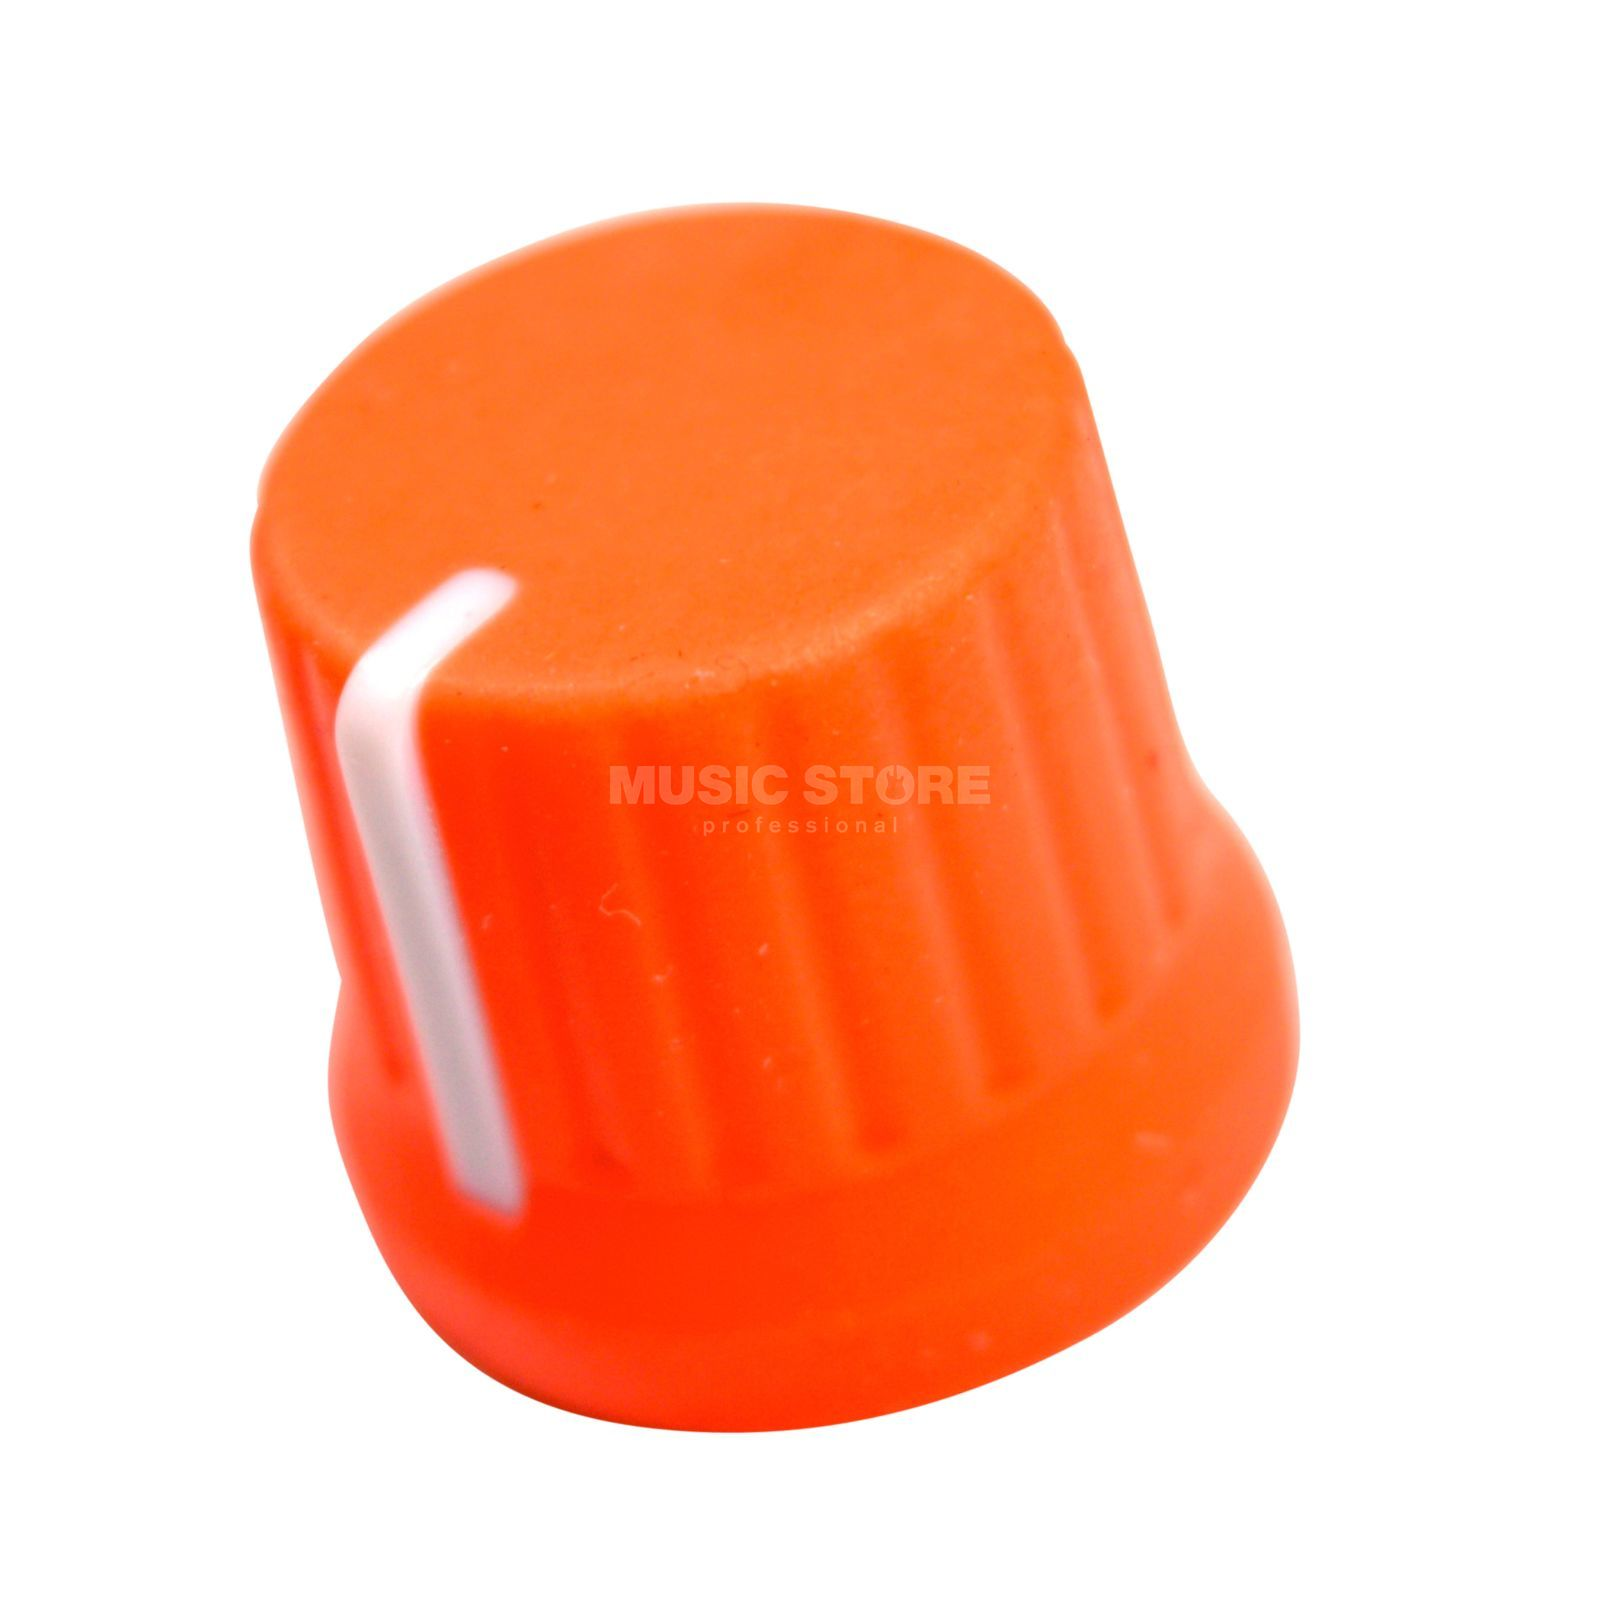 DJ TECHTOOLS Chroma Caps Fatty knop neon orange Productafbeelding